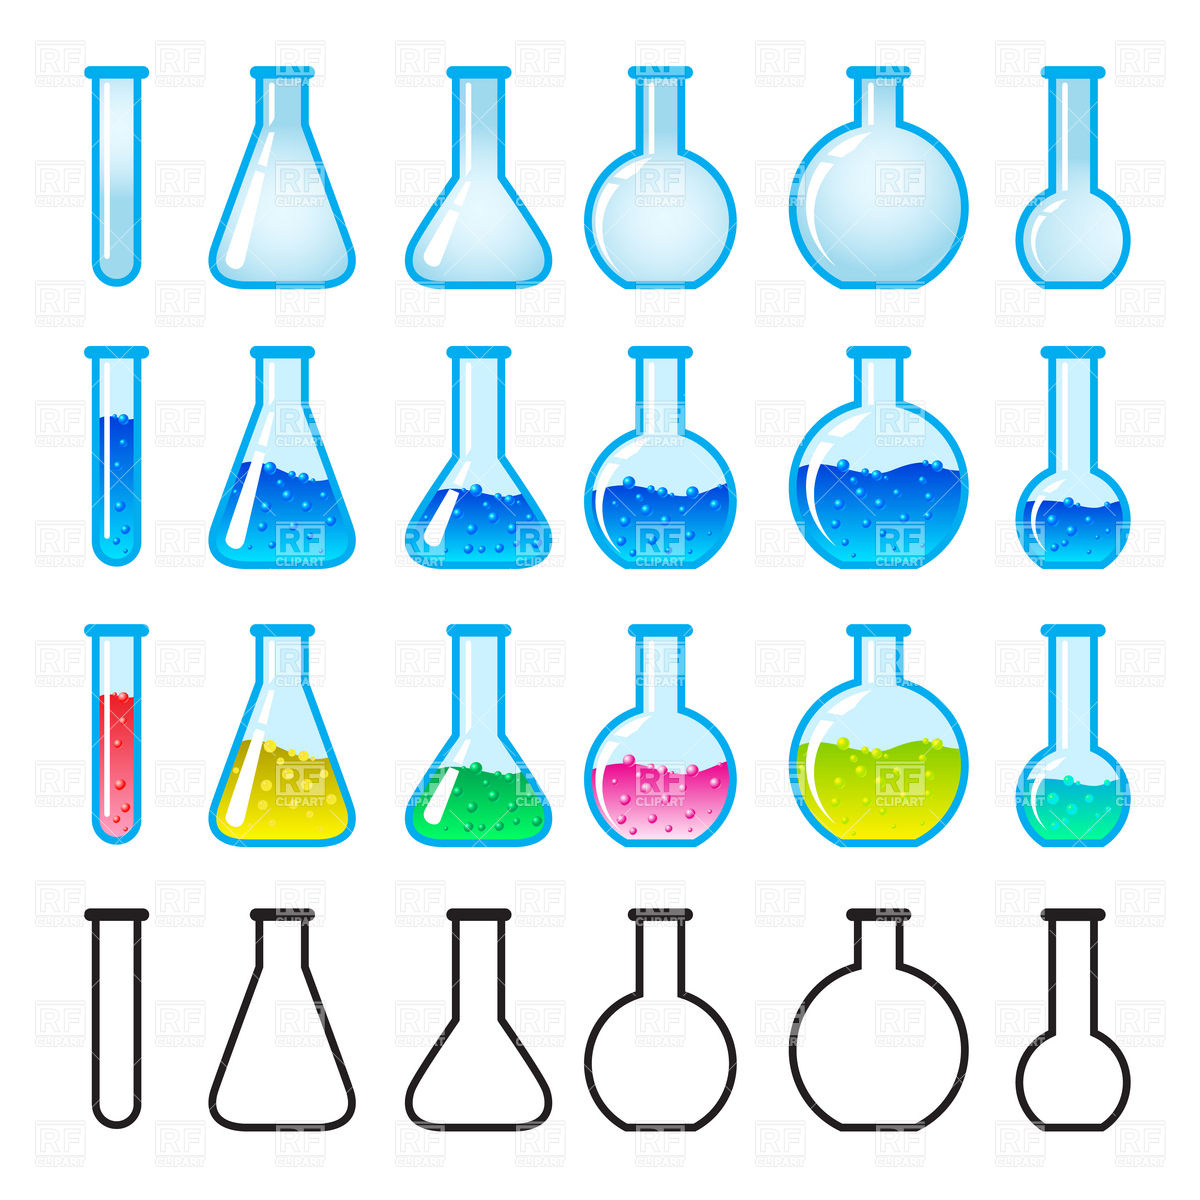 Laboratory glass flasks and test tubes Vector Image #8045.